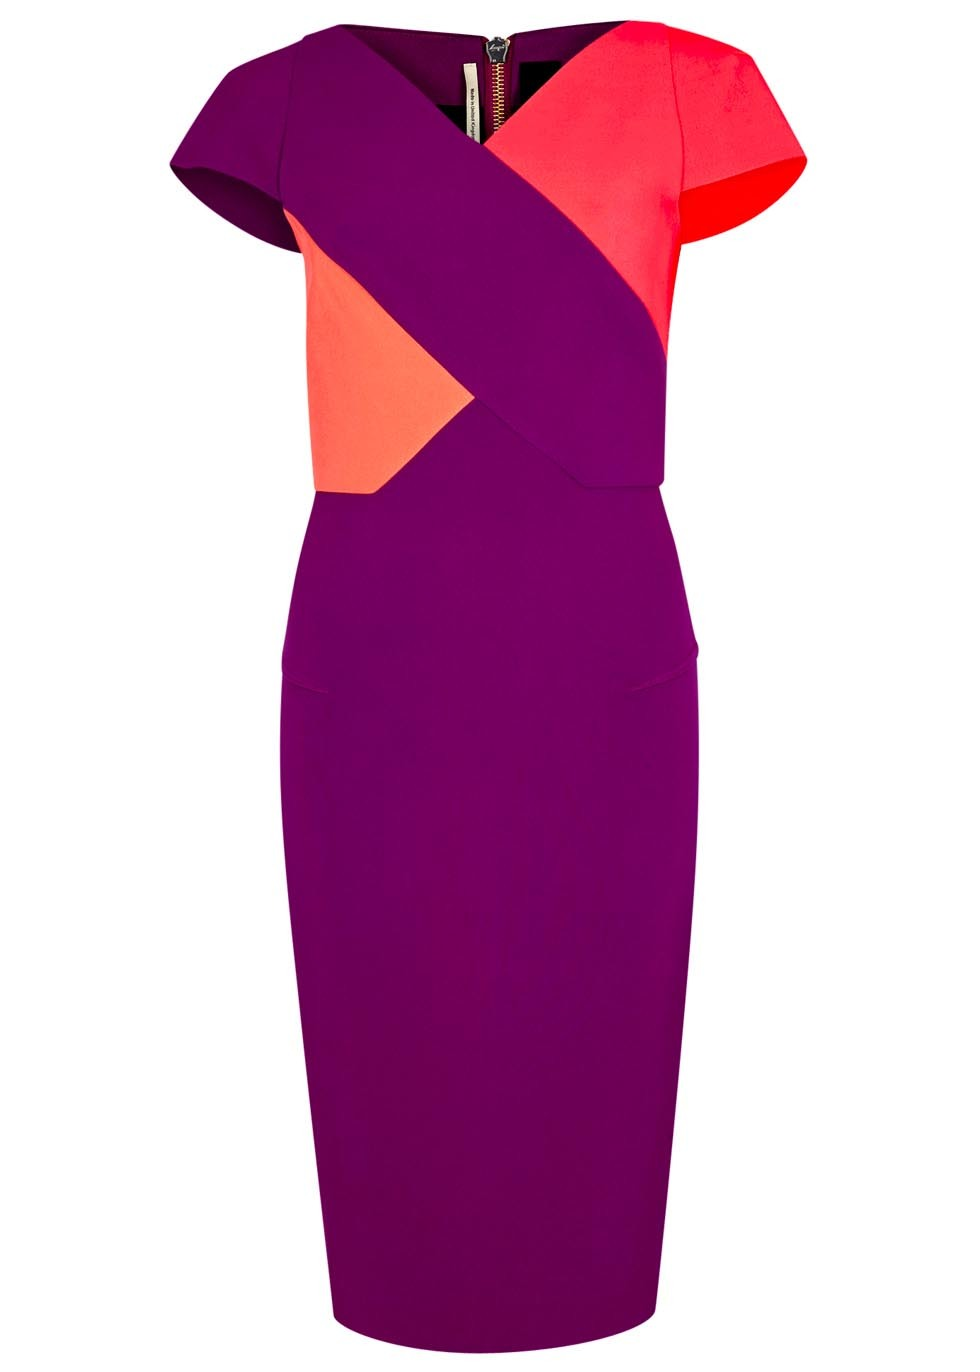 Tournay Tri Tone Dress - style: shift; neckline: v-neck; sleeve style: capped; fit: tailored/fitted; hip detail: fitted at hip; predominant colour: magenta; secondary colour: coral; occasions: evening, occasion; length: on the knee; fibres: polyester/polyamide - 100%; sleeve length: short sleeve; texture group: crepes; pattern type: fabric; pattern size: standard; pattern: colourblock; season: s/s 2016; wardrobe: event